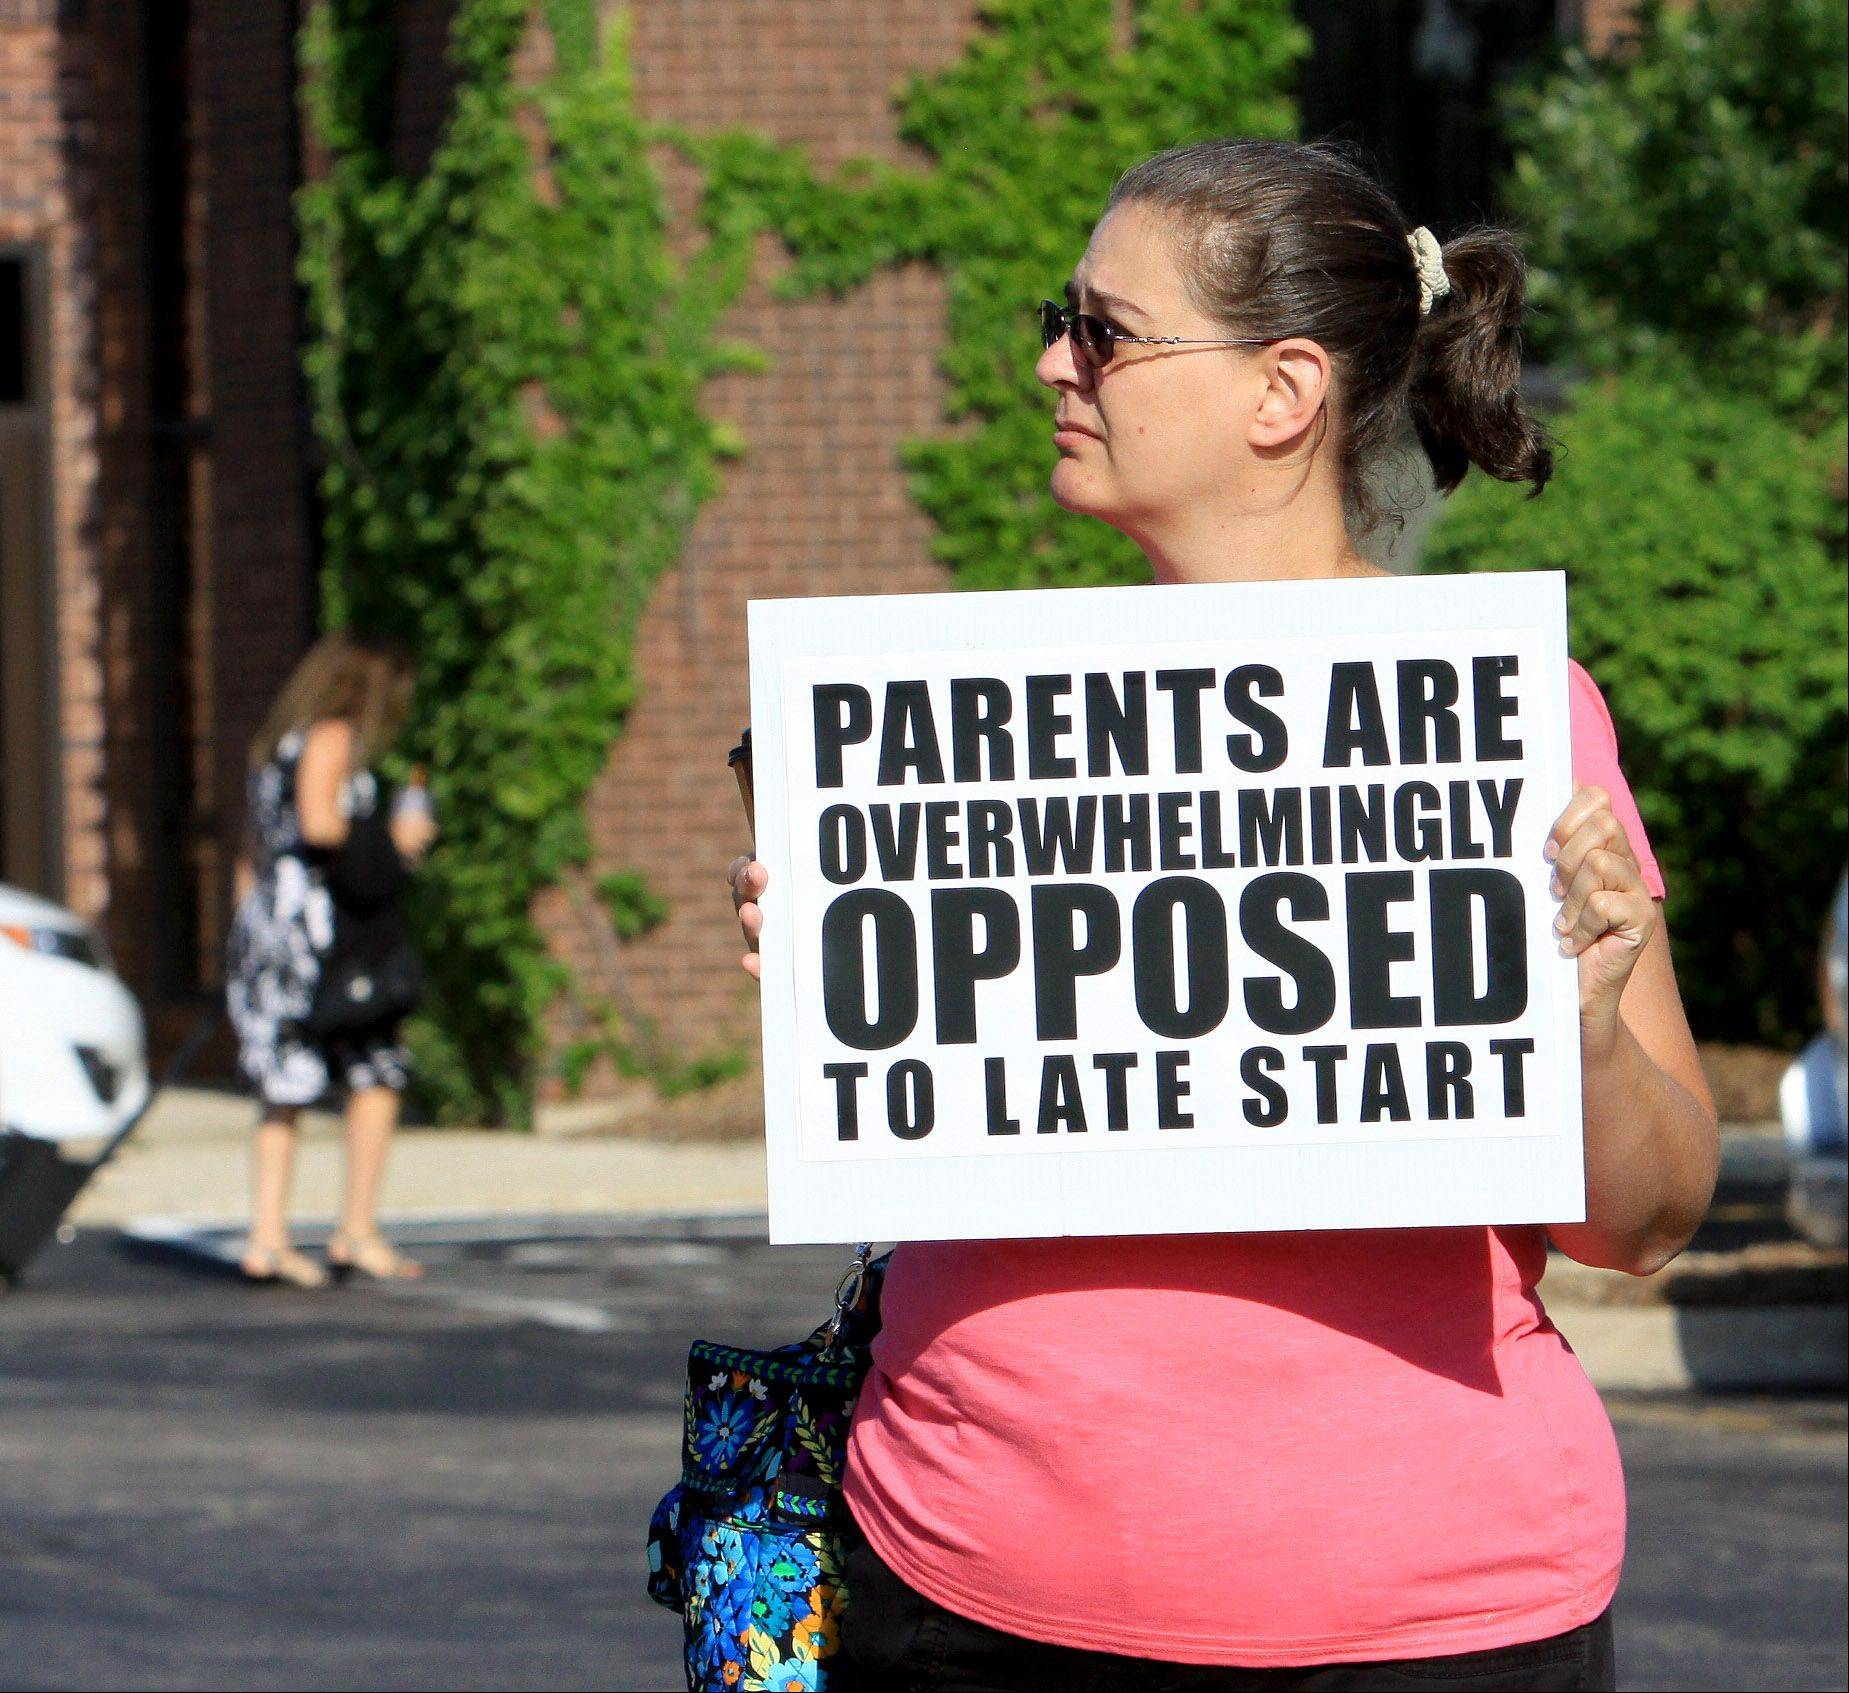 Jill Upadhyaya, a parent from Hoffman Estates, shows her opposition to the late start scheduling option supported by the Palatine Township Elementary District 15 teachers union.